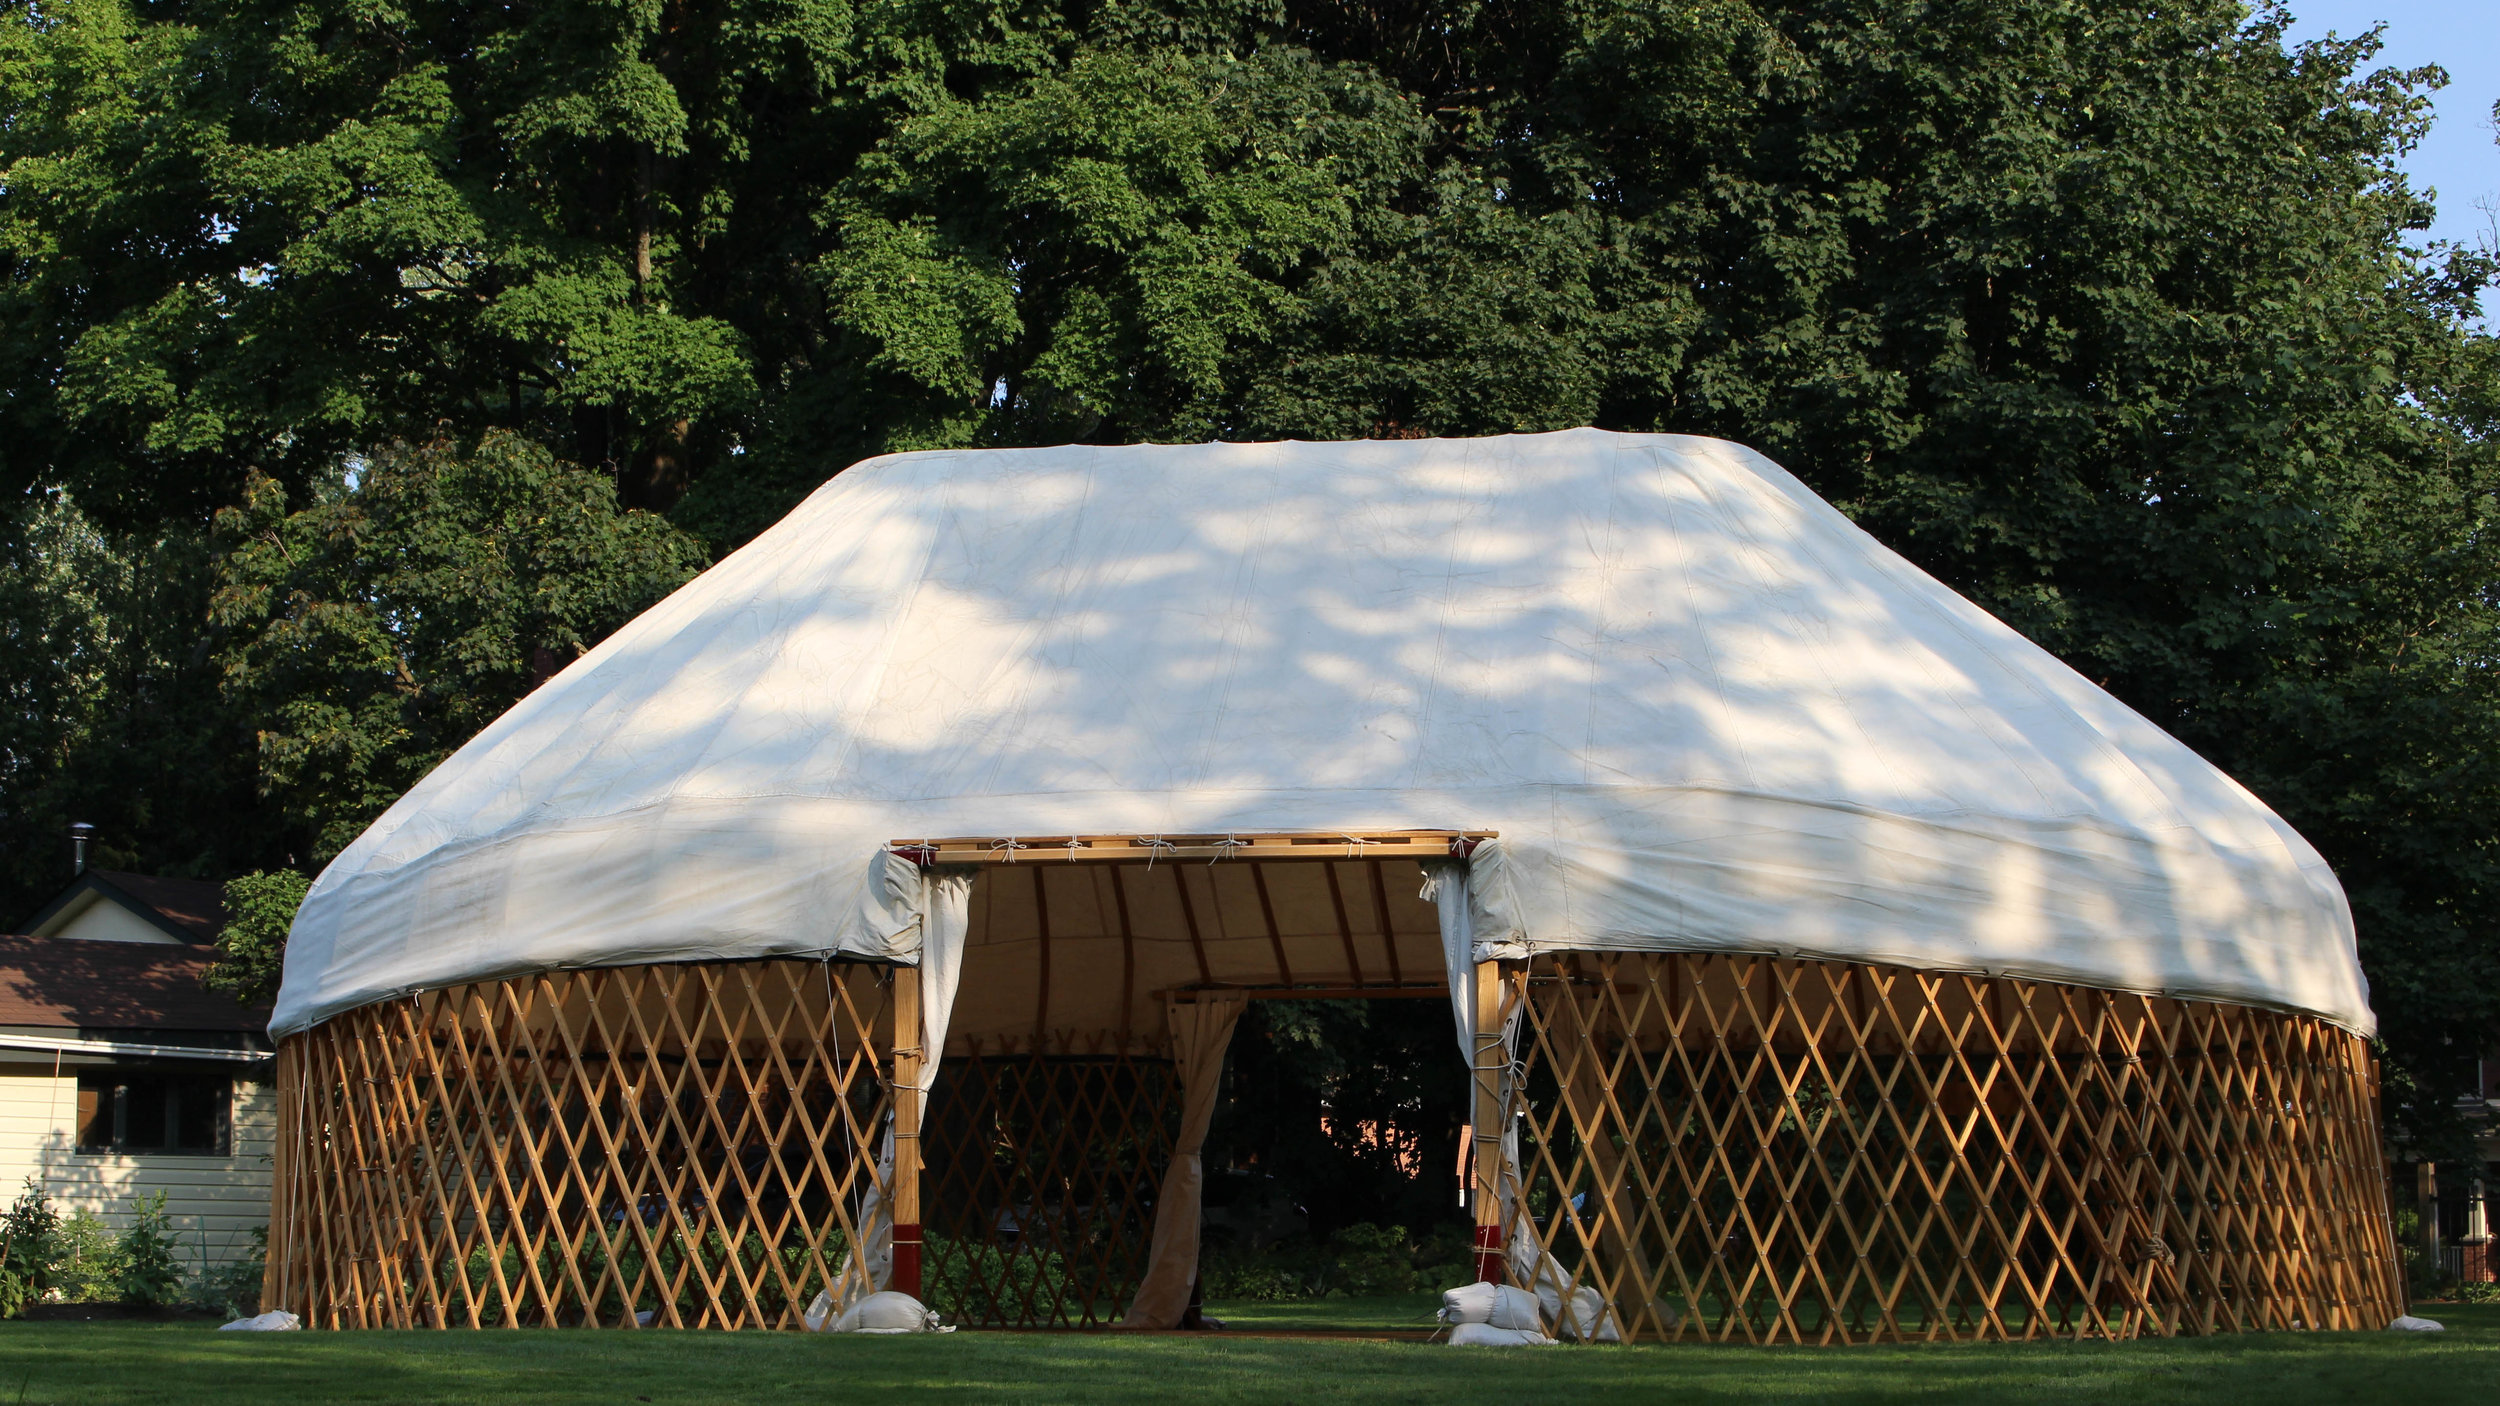 Signature Long Barn Yurt - Service Type: RentalSize: 23 feet x 33 feetCapacity: Up to 80 peopleSide Canvas Coverage: Yes/OptionalHeating/Cooling Option: Available